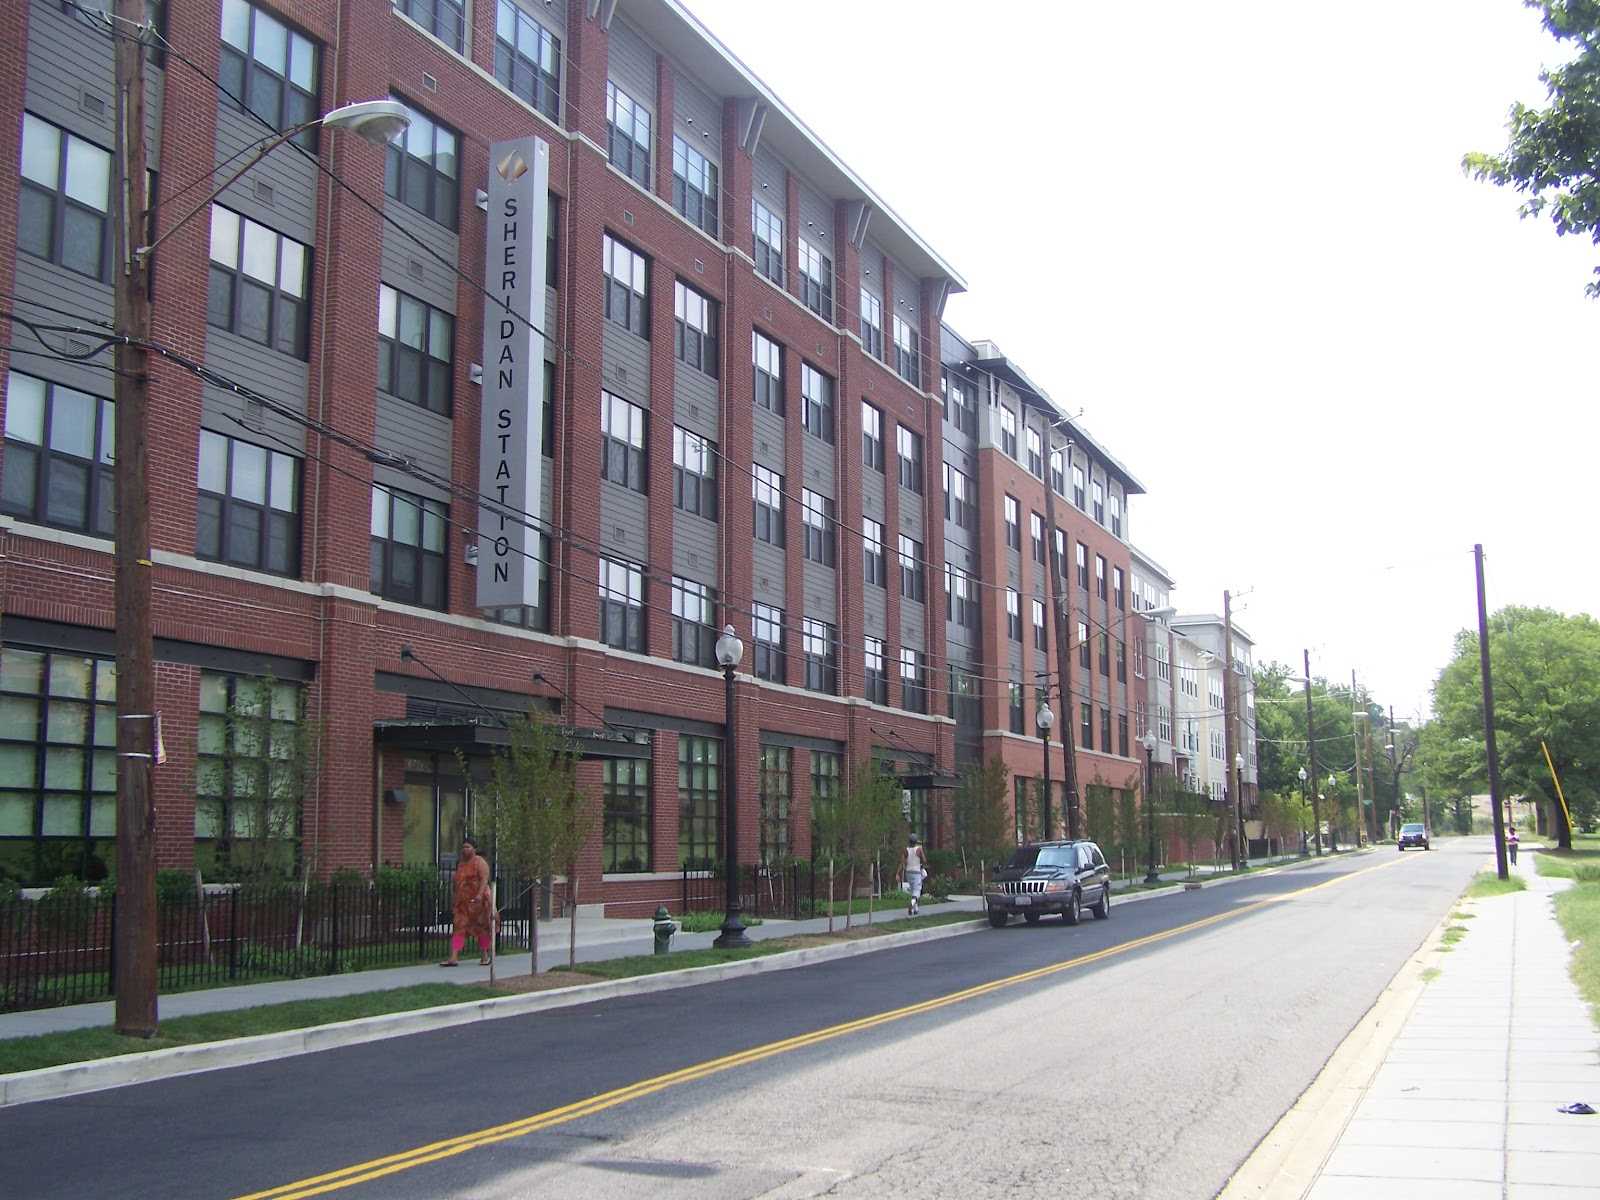 Rebuilding Place in the Urban Space Federal tax credit programs